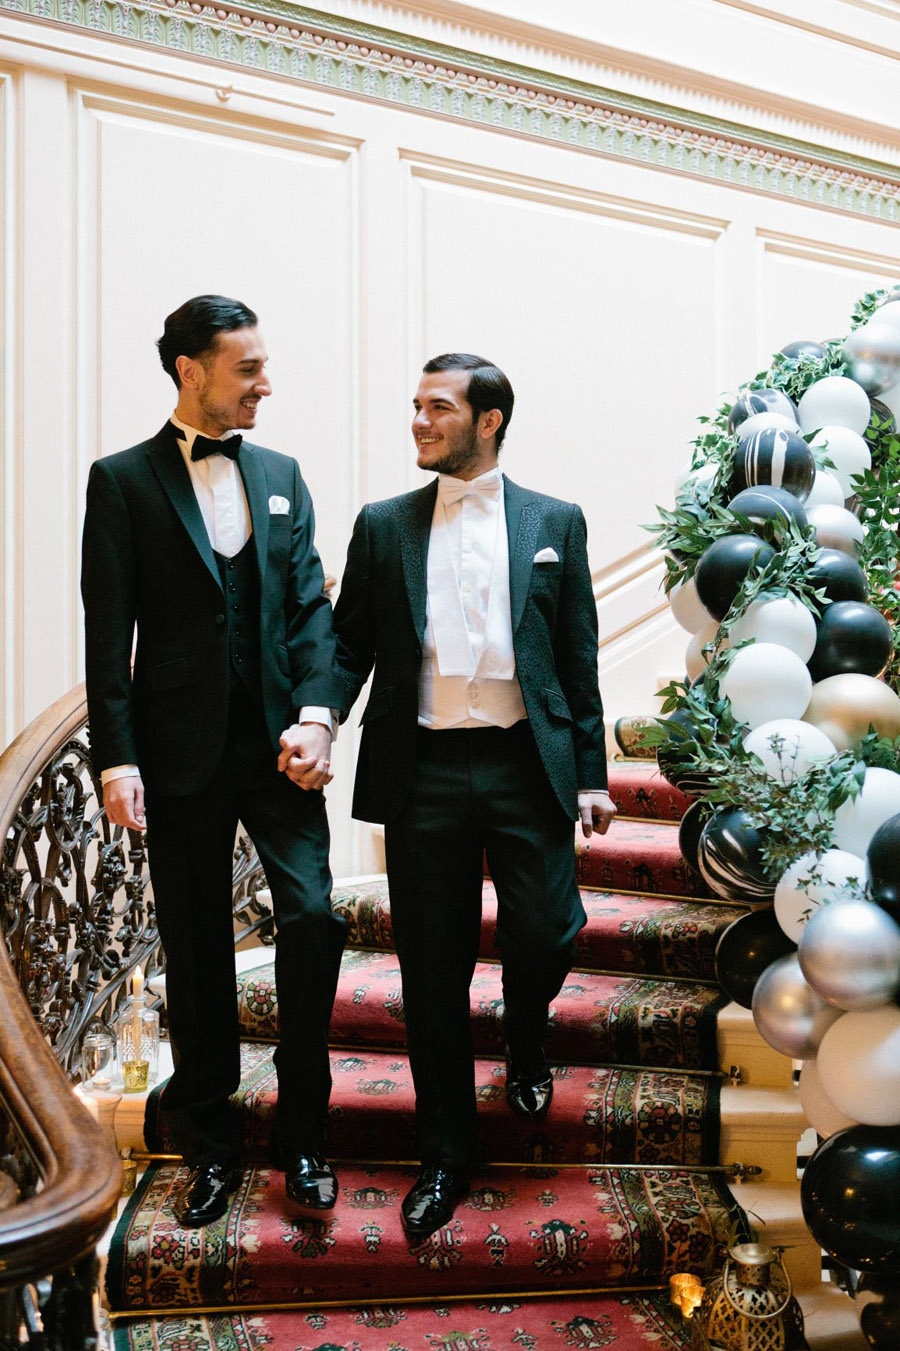 Mount Ephraim wedding style ideas on English-Wedding.com Photo credit Matilda Delves (5)